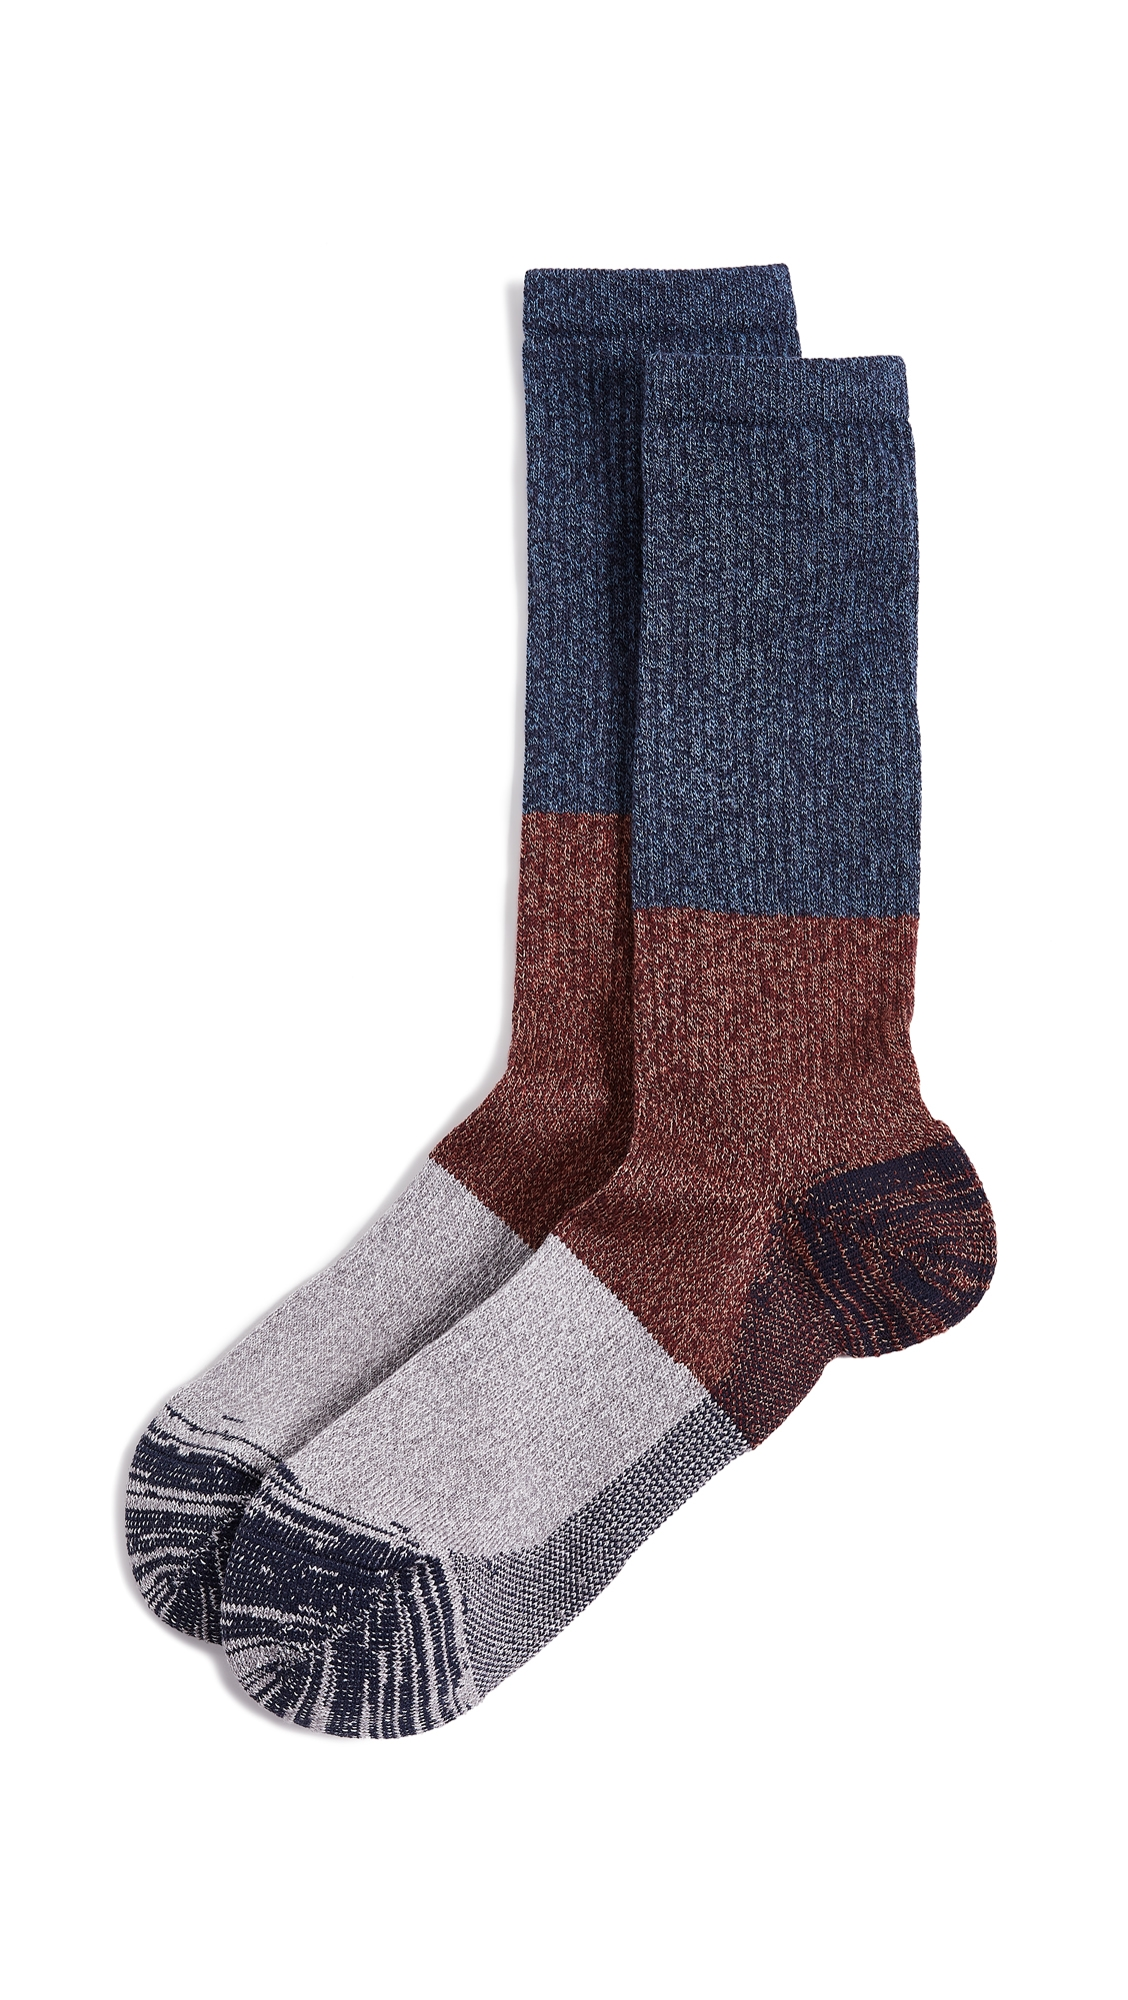 ANONYMOUS ISM MOC PILE CREW SOCKS